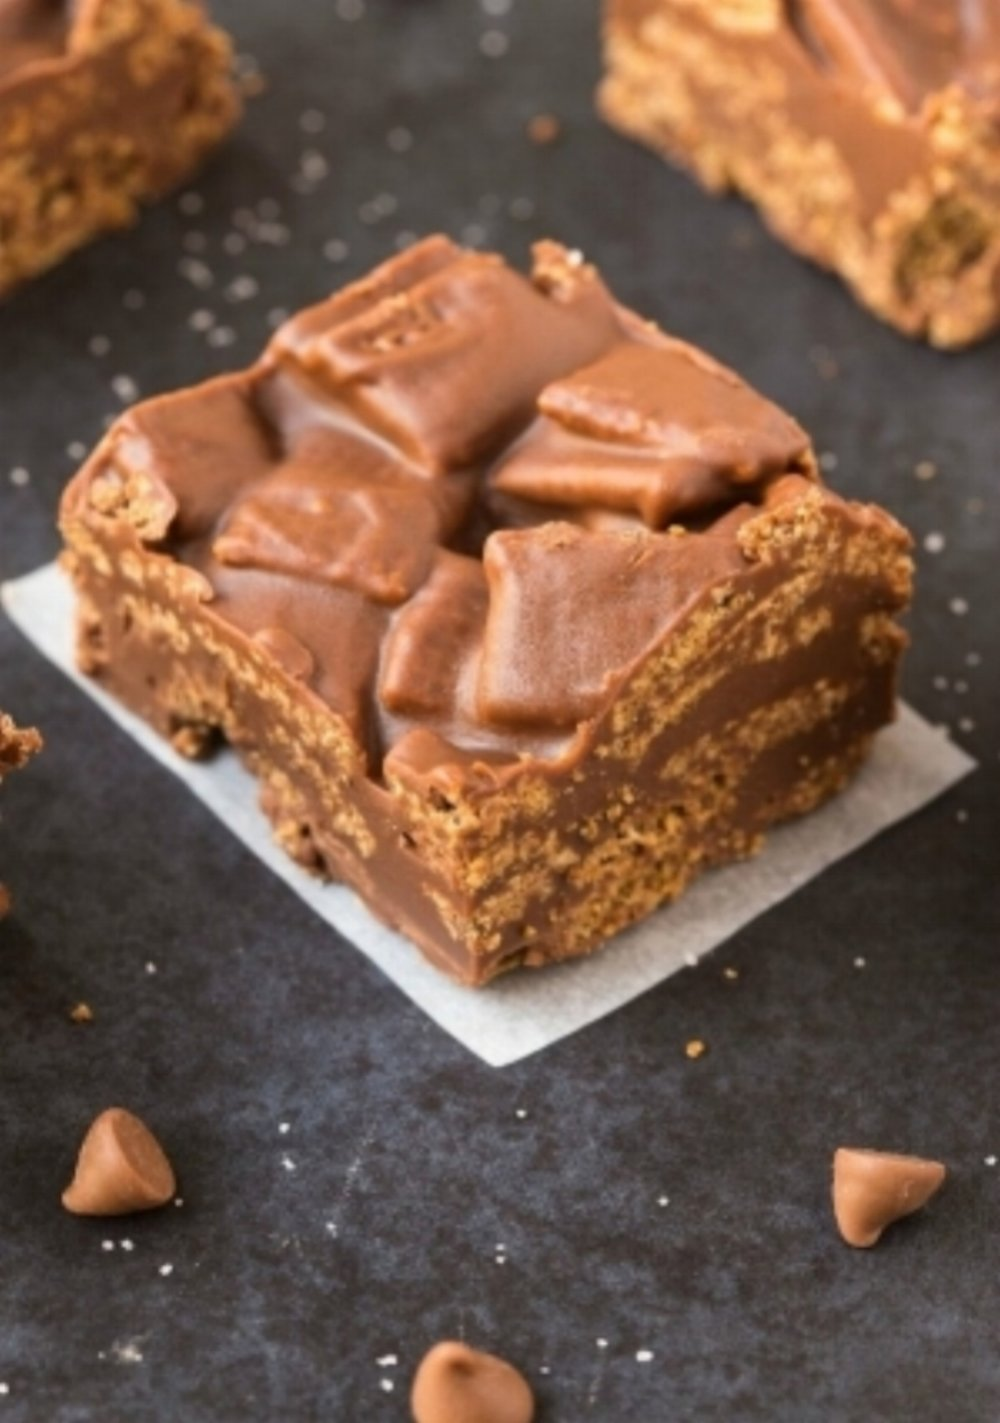 Healthy No Bake Peanut Butter Kit Kat Crunch Barsusing just one bowl, 5 ingredients and less than 2 minutes! This quick and easy snack or dessert is naturally gluten free, vegan, dairy free,  and can be made sugar free!